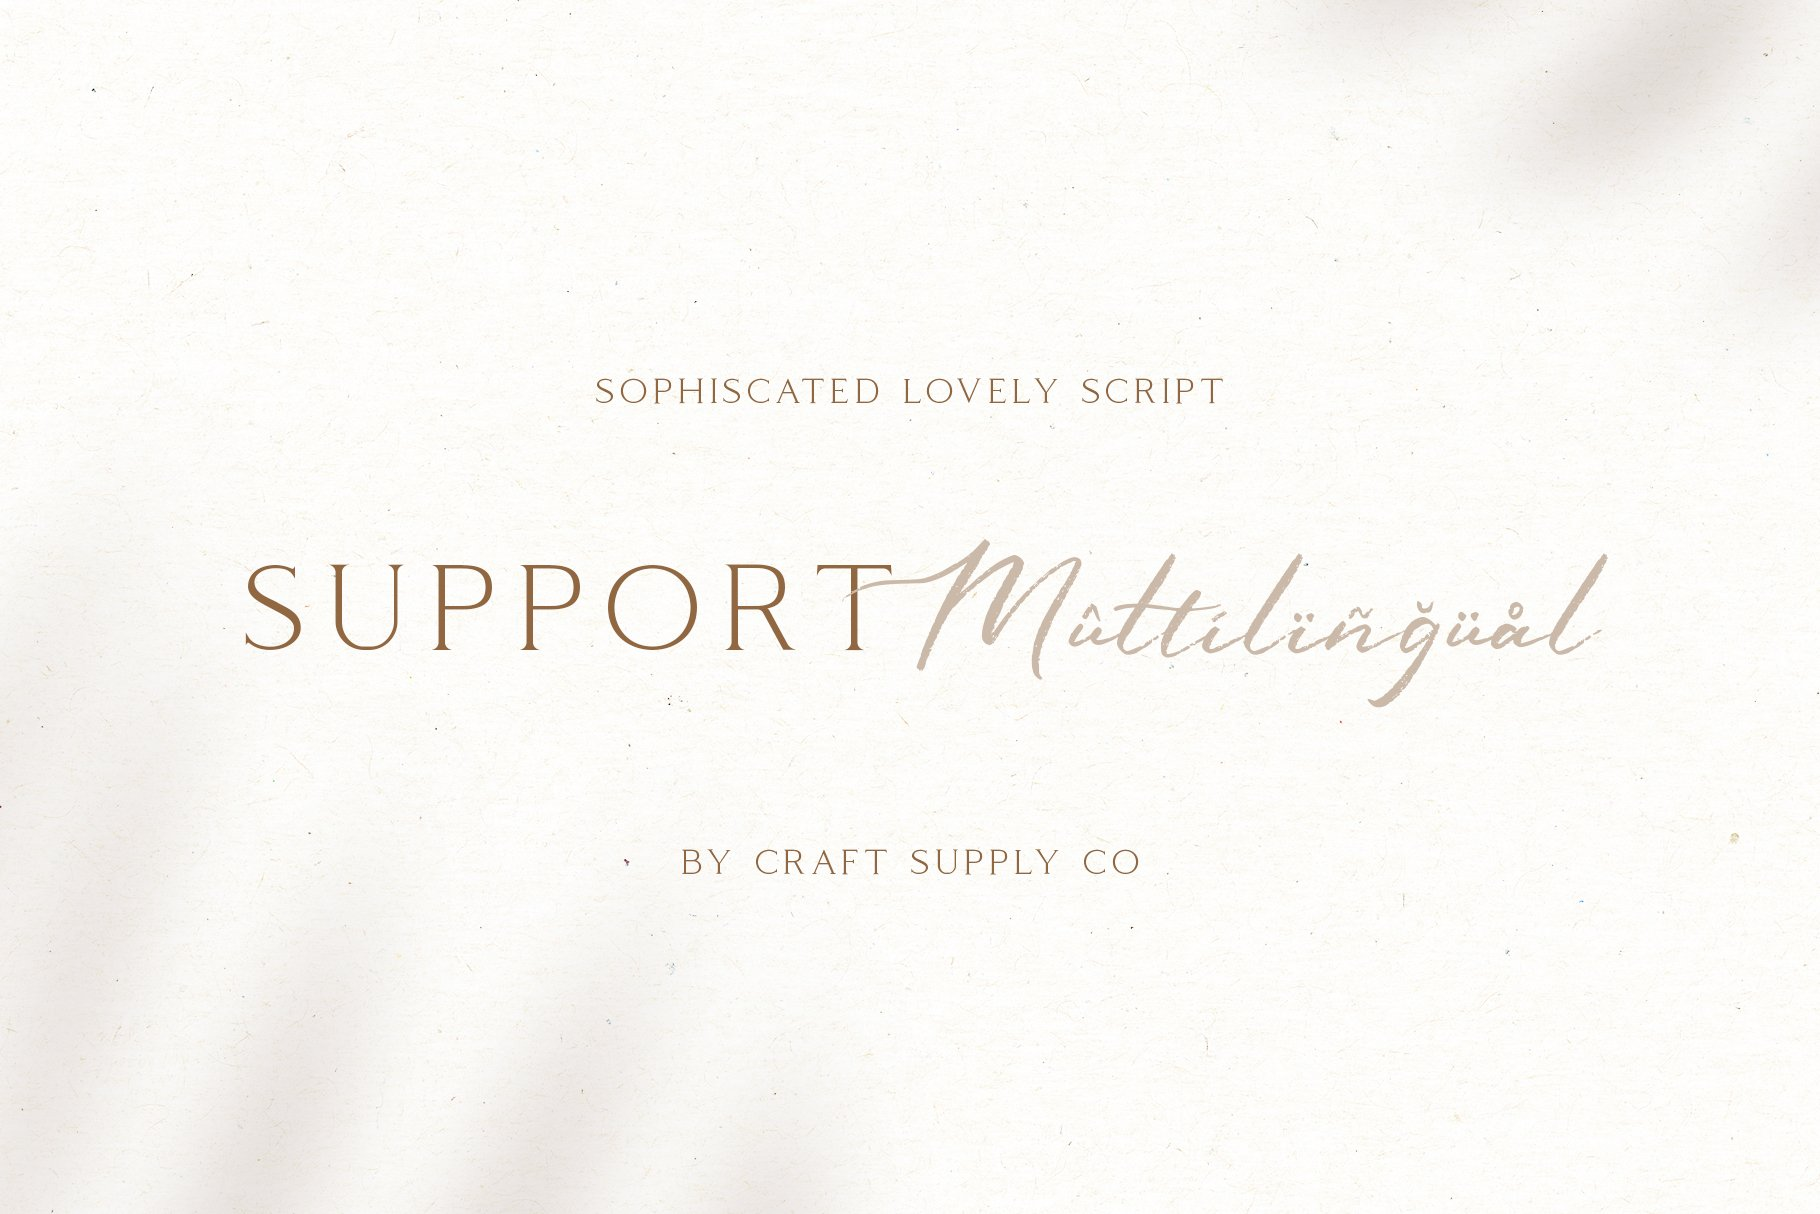 Sophiscated - A Lovely Script Font example image 6